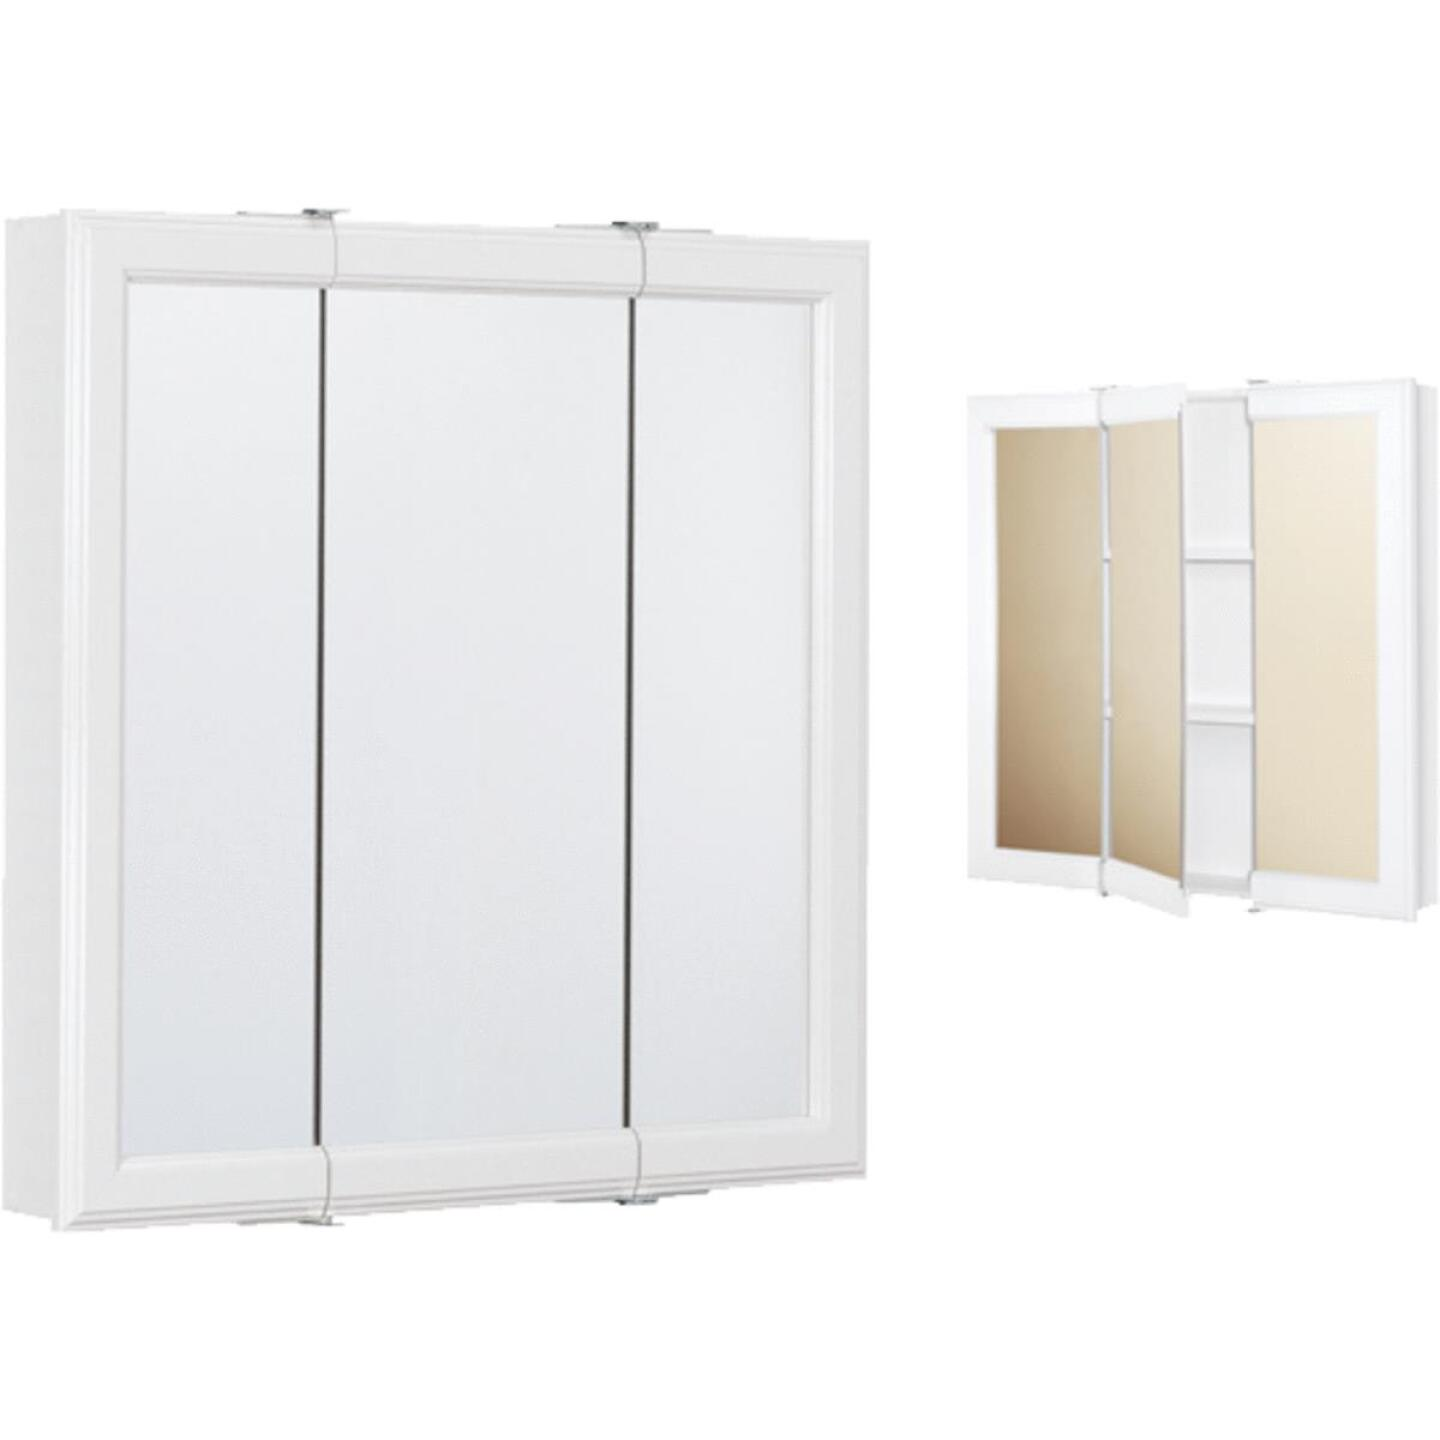 Continental Cabinets White 30 In. W x 28-3/4 In. H x 4-1/2 In. D Tri-View Surface Mount Medicine Cabinet Image 1